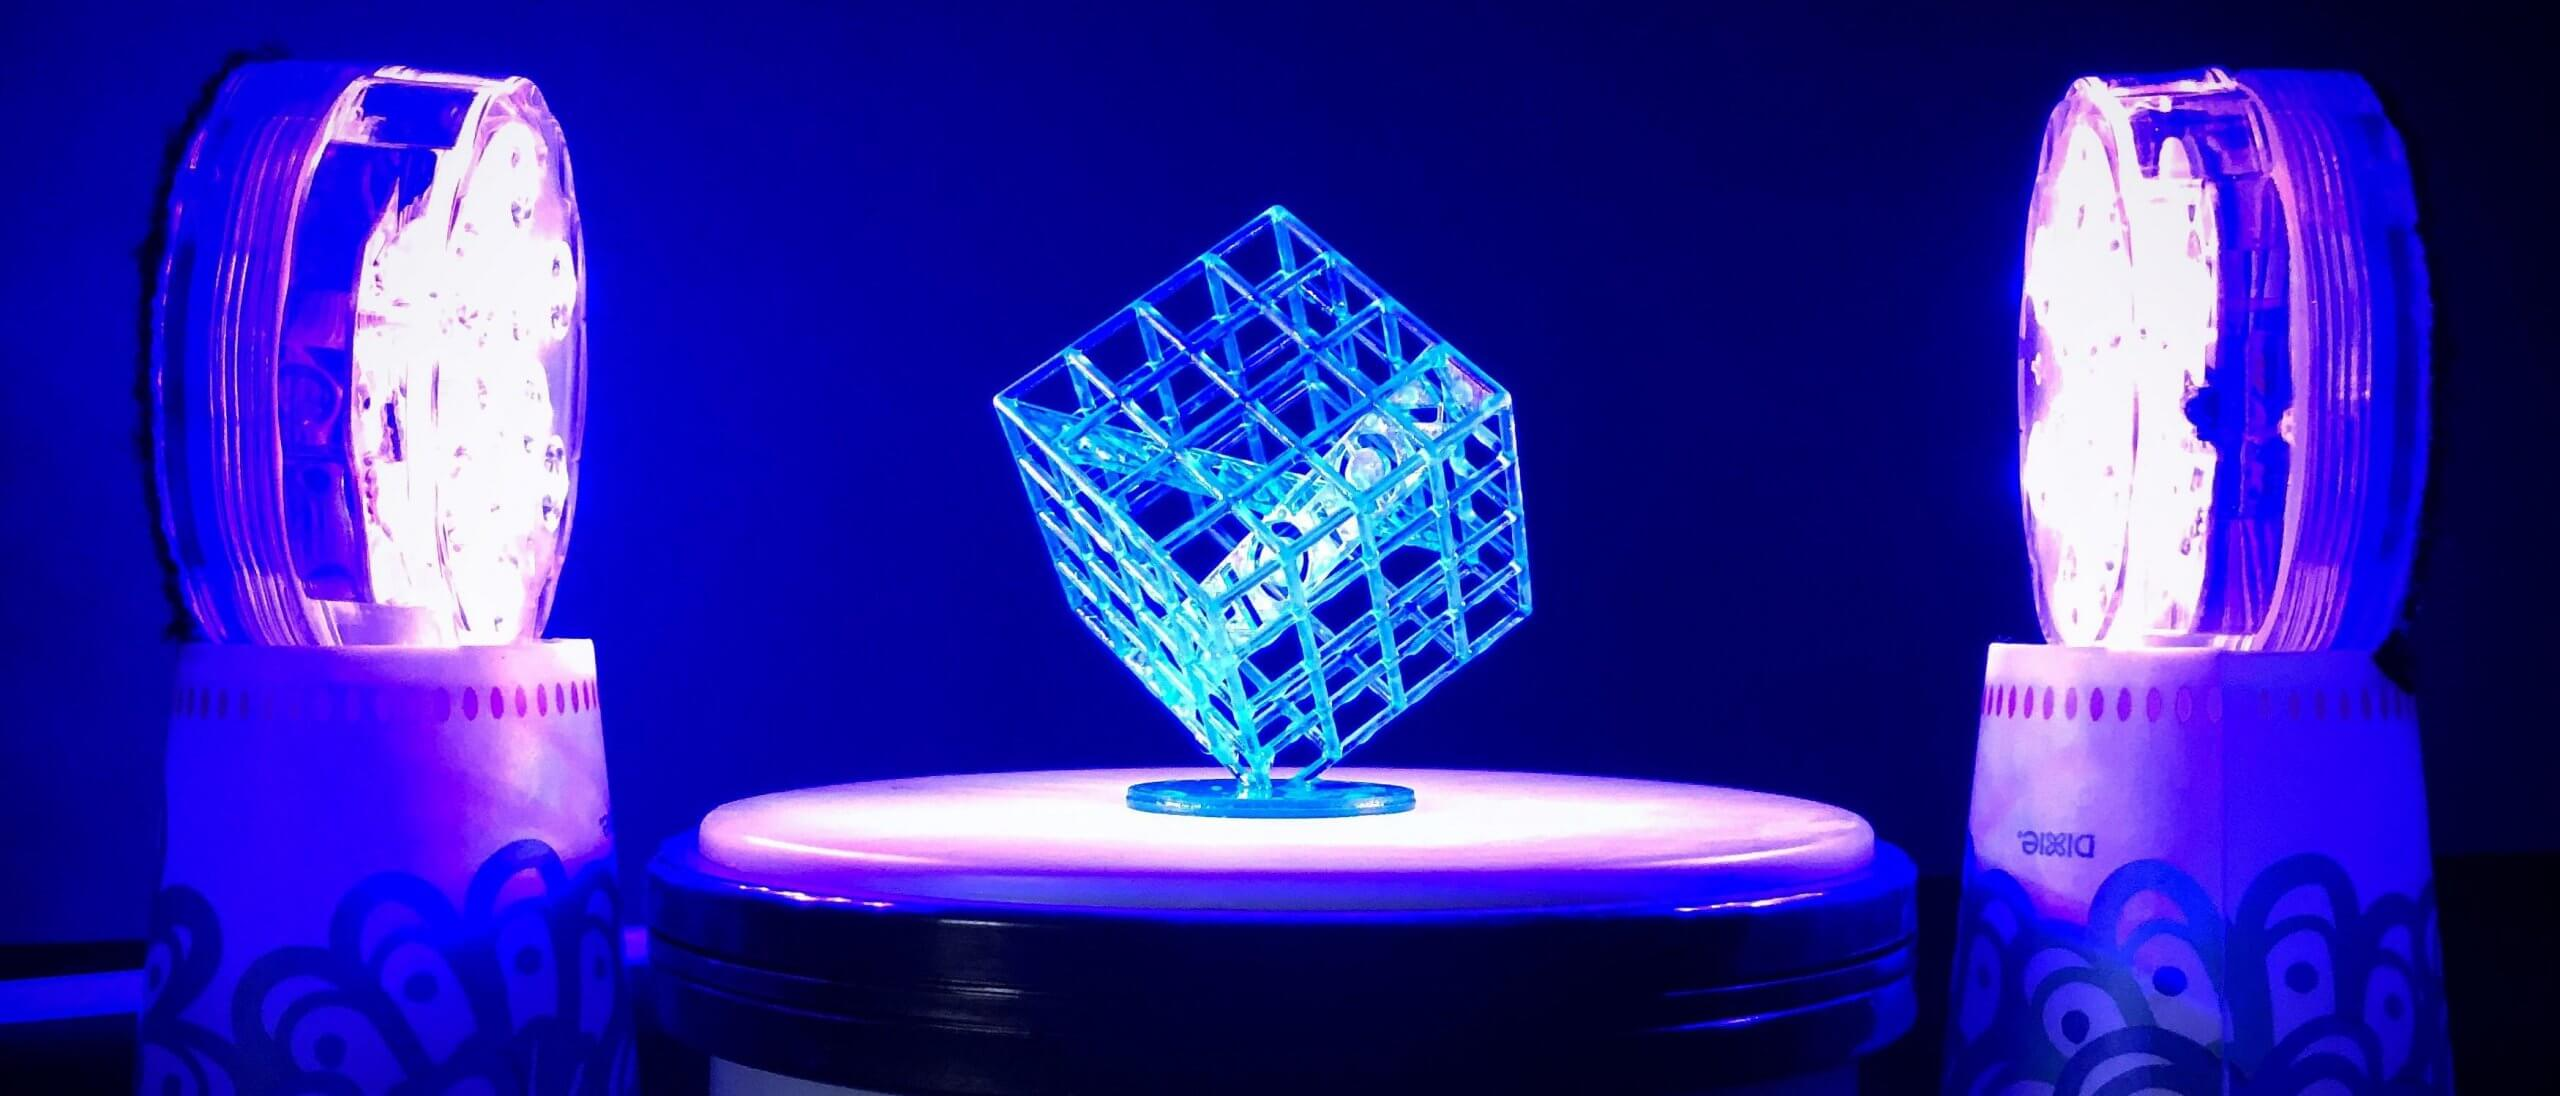 3D Printing post processing Curing by UV curing lamp scaled - What is 3d printing and how does it work?